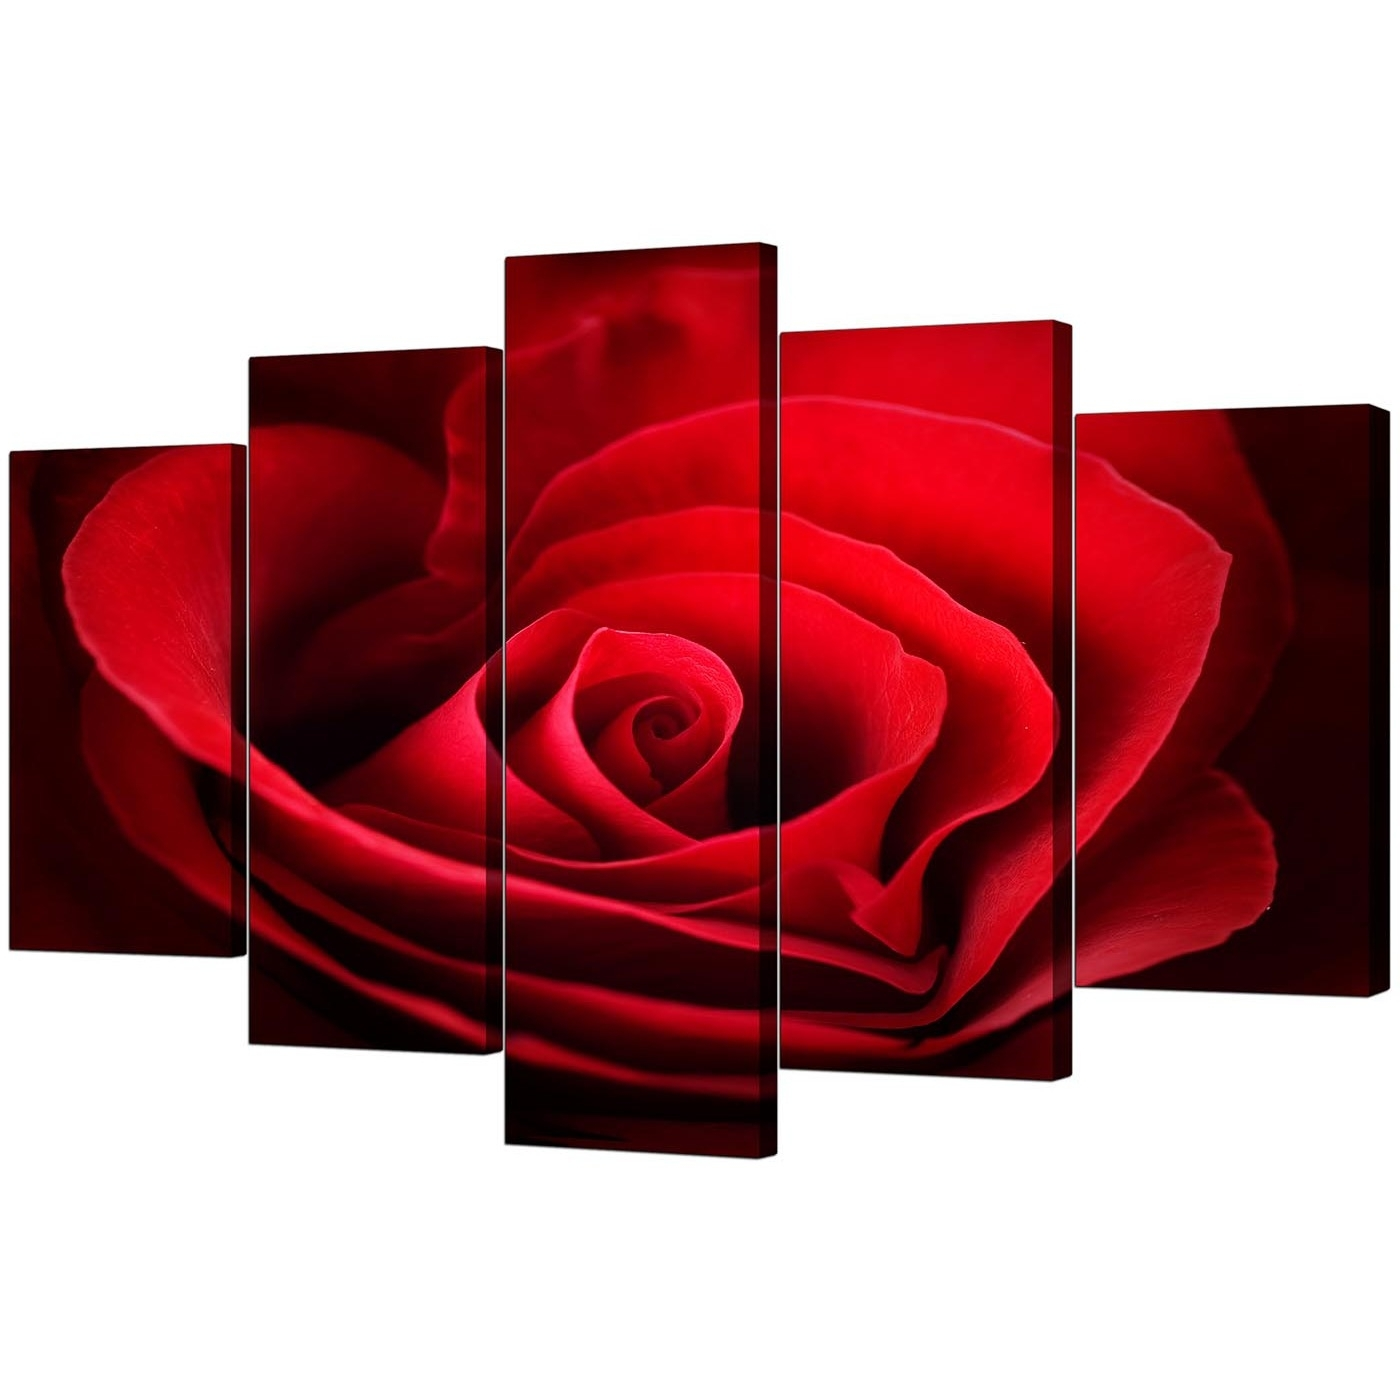 Red Wall Art Intended For Well Known Extra Large Rose Canvas Wall Art 5 Panel In Red (View 4 of 15)